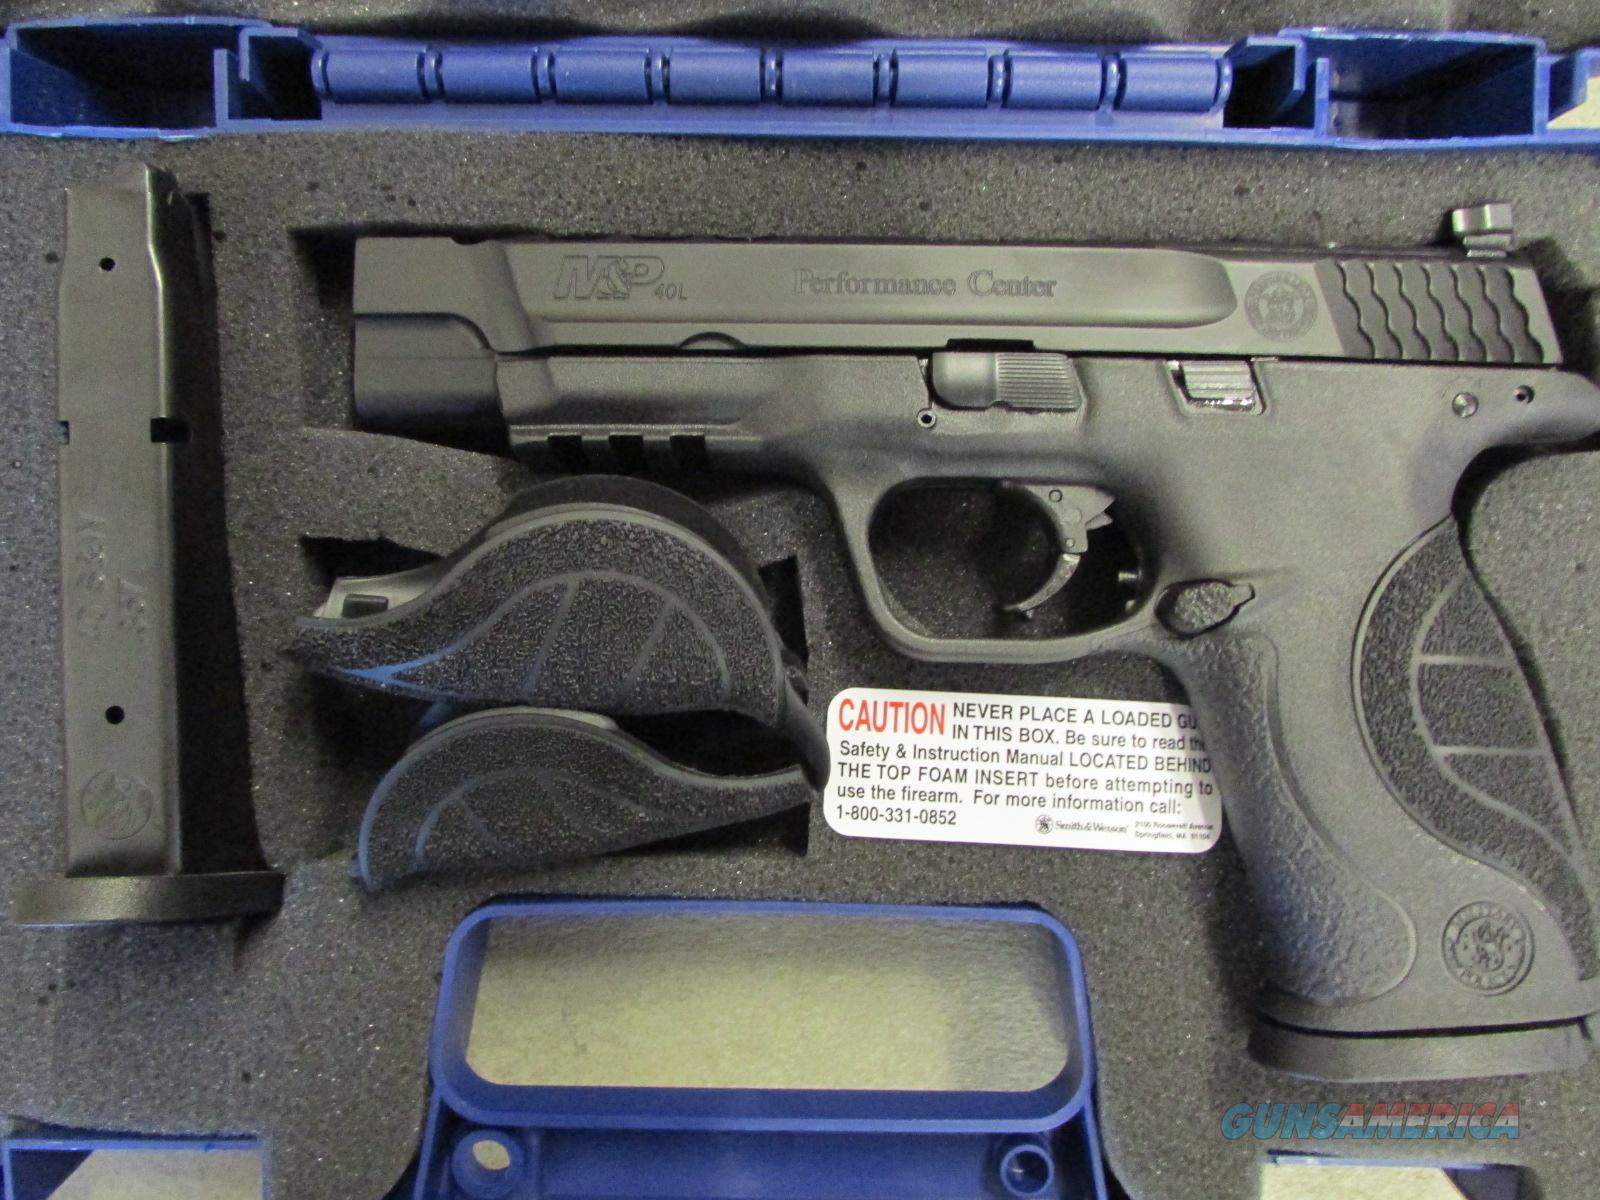 Smith & Wesson M&P40 Performance Center Ported .40 S&W 10100  Guns > Pistols > Smith & Wesson Pistols - Autos > Polymer Frame